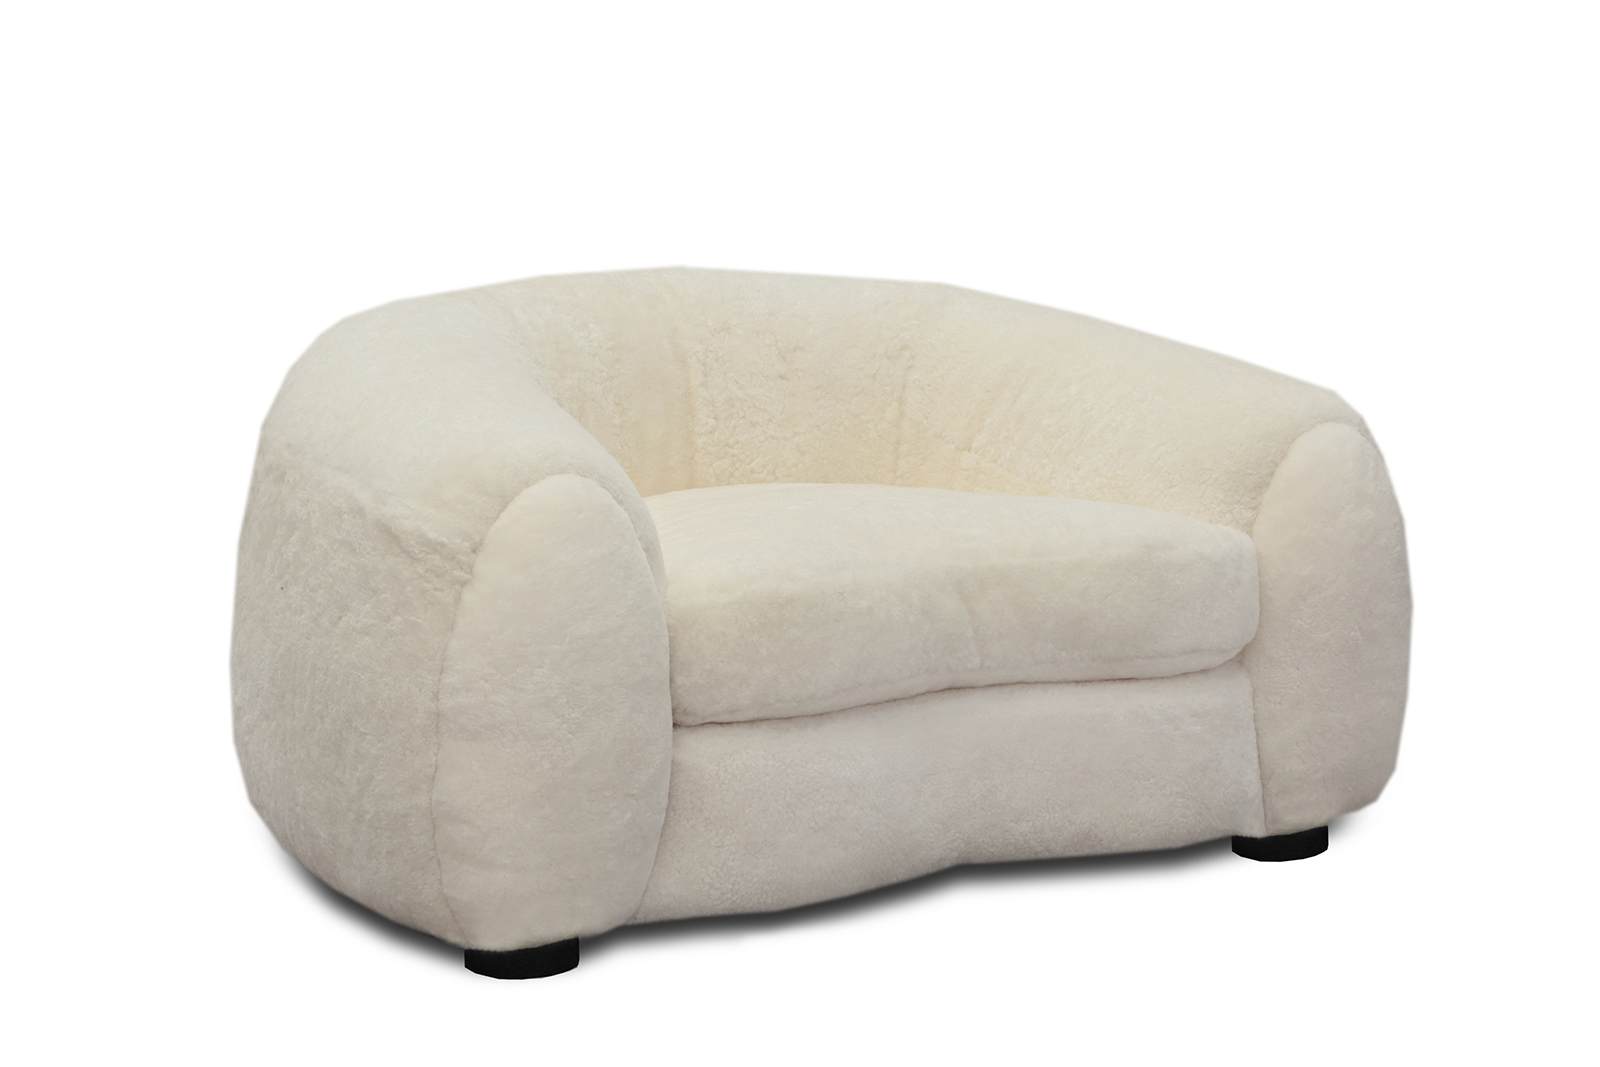 5995 - CURATE DESIGN -AMORE 14 SHEARLING IVORY 2